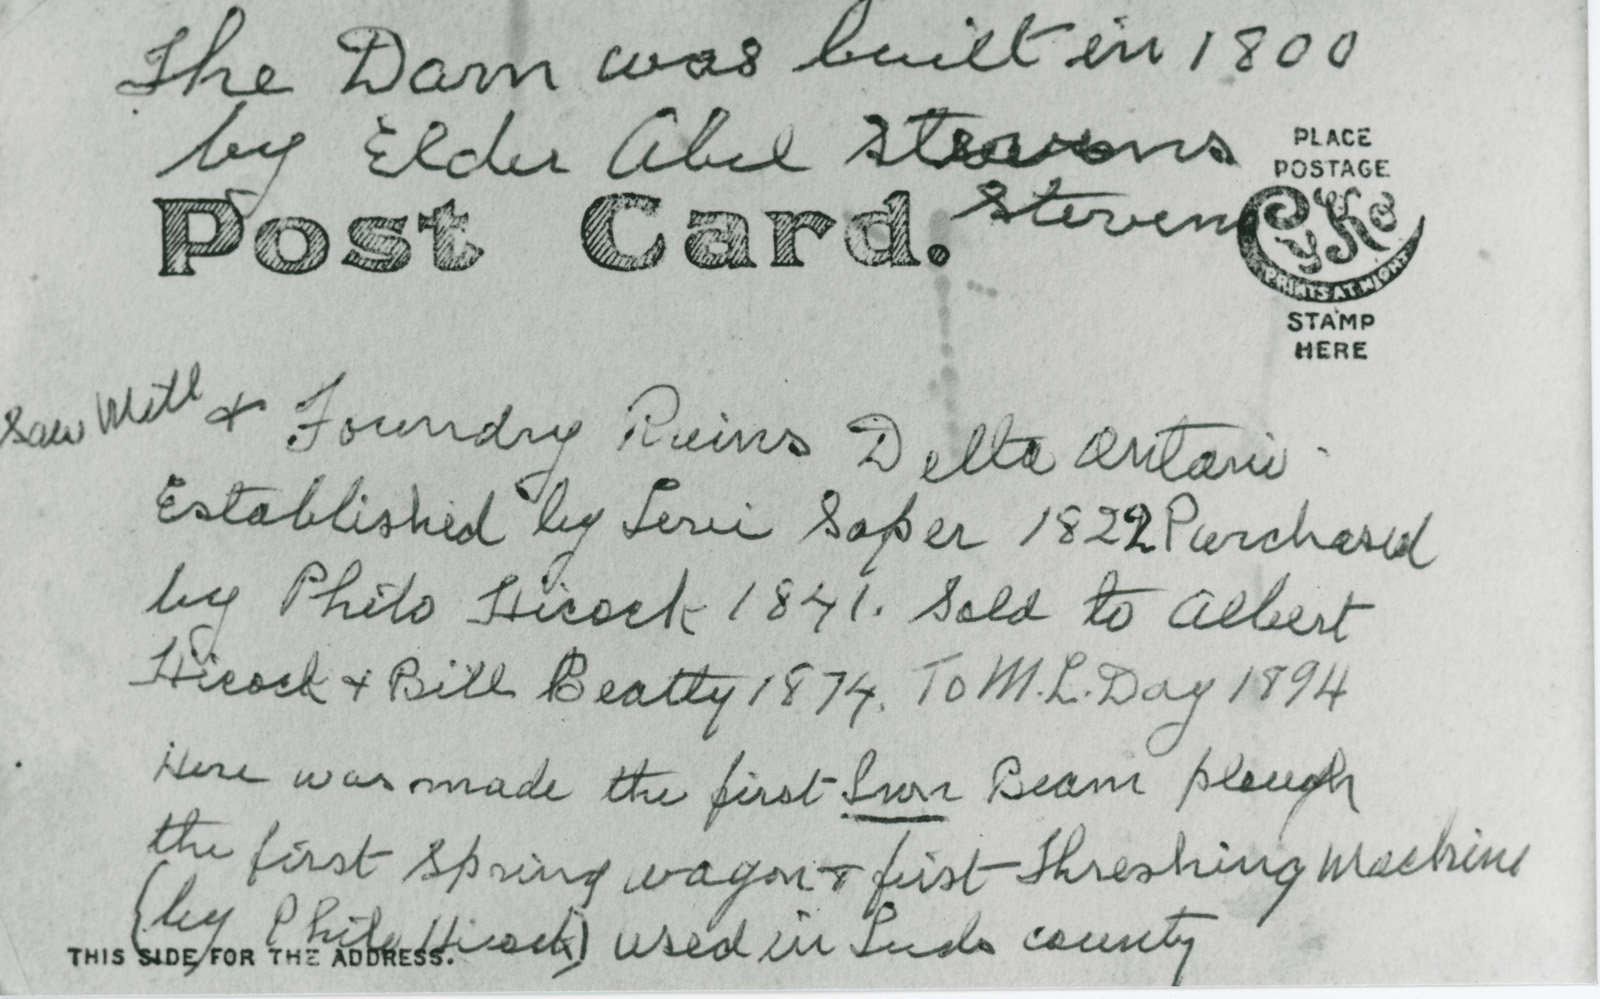 Back of Iron Foundry Ruin Postcard